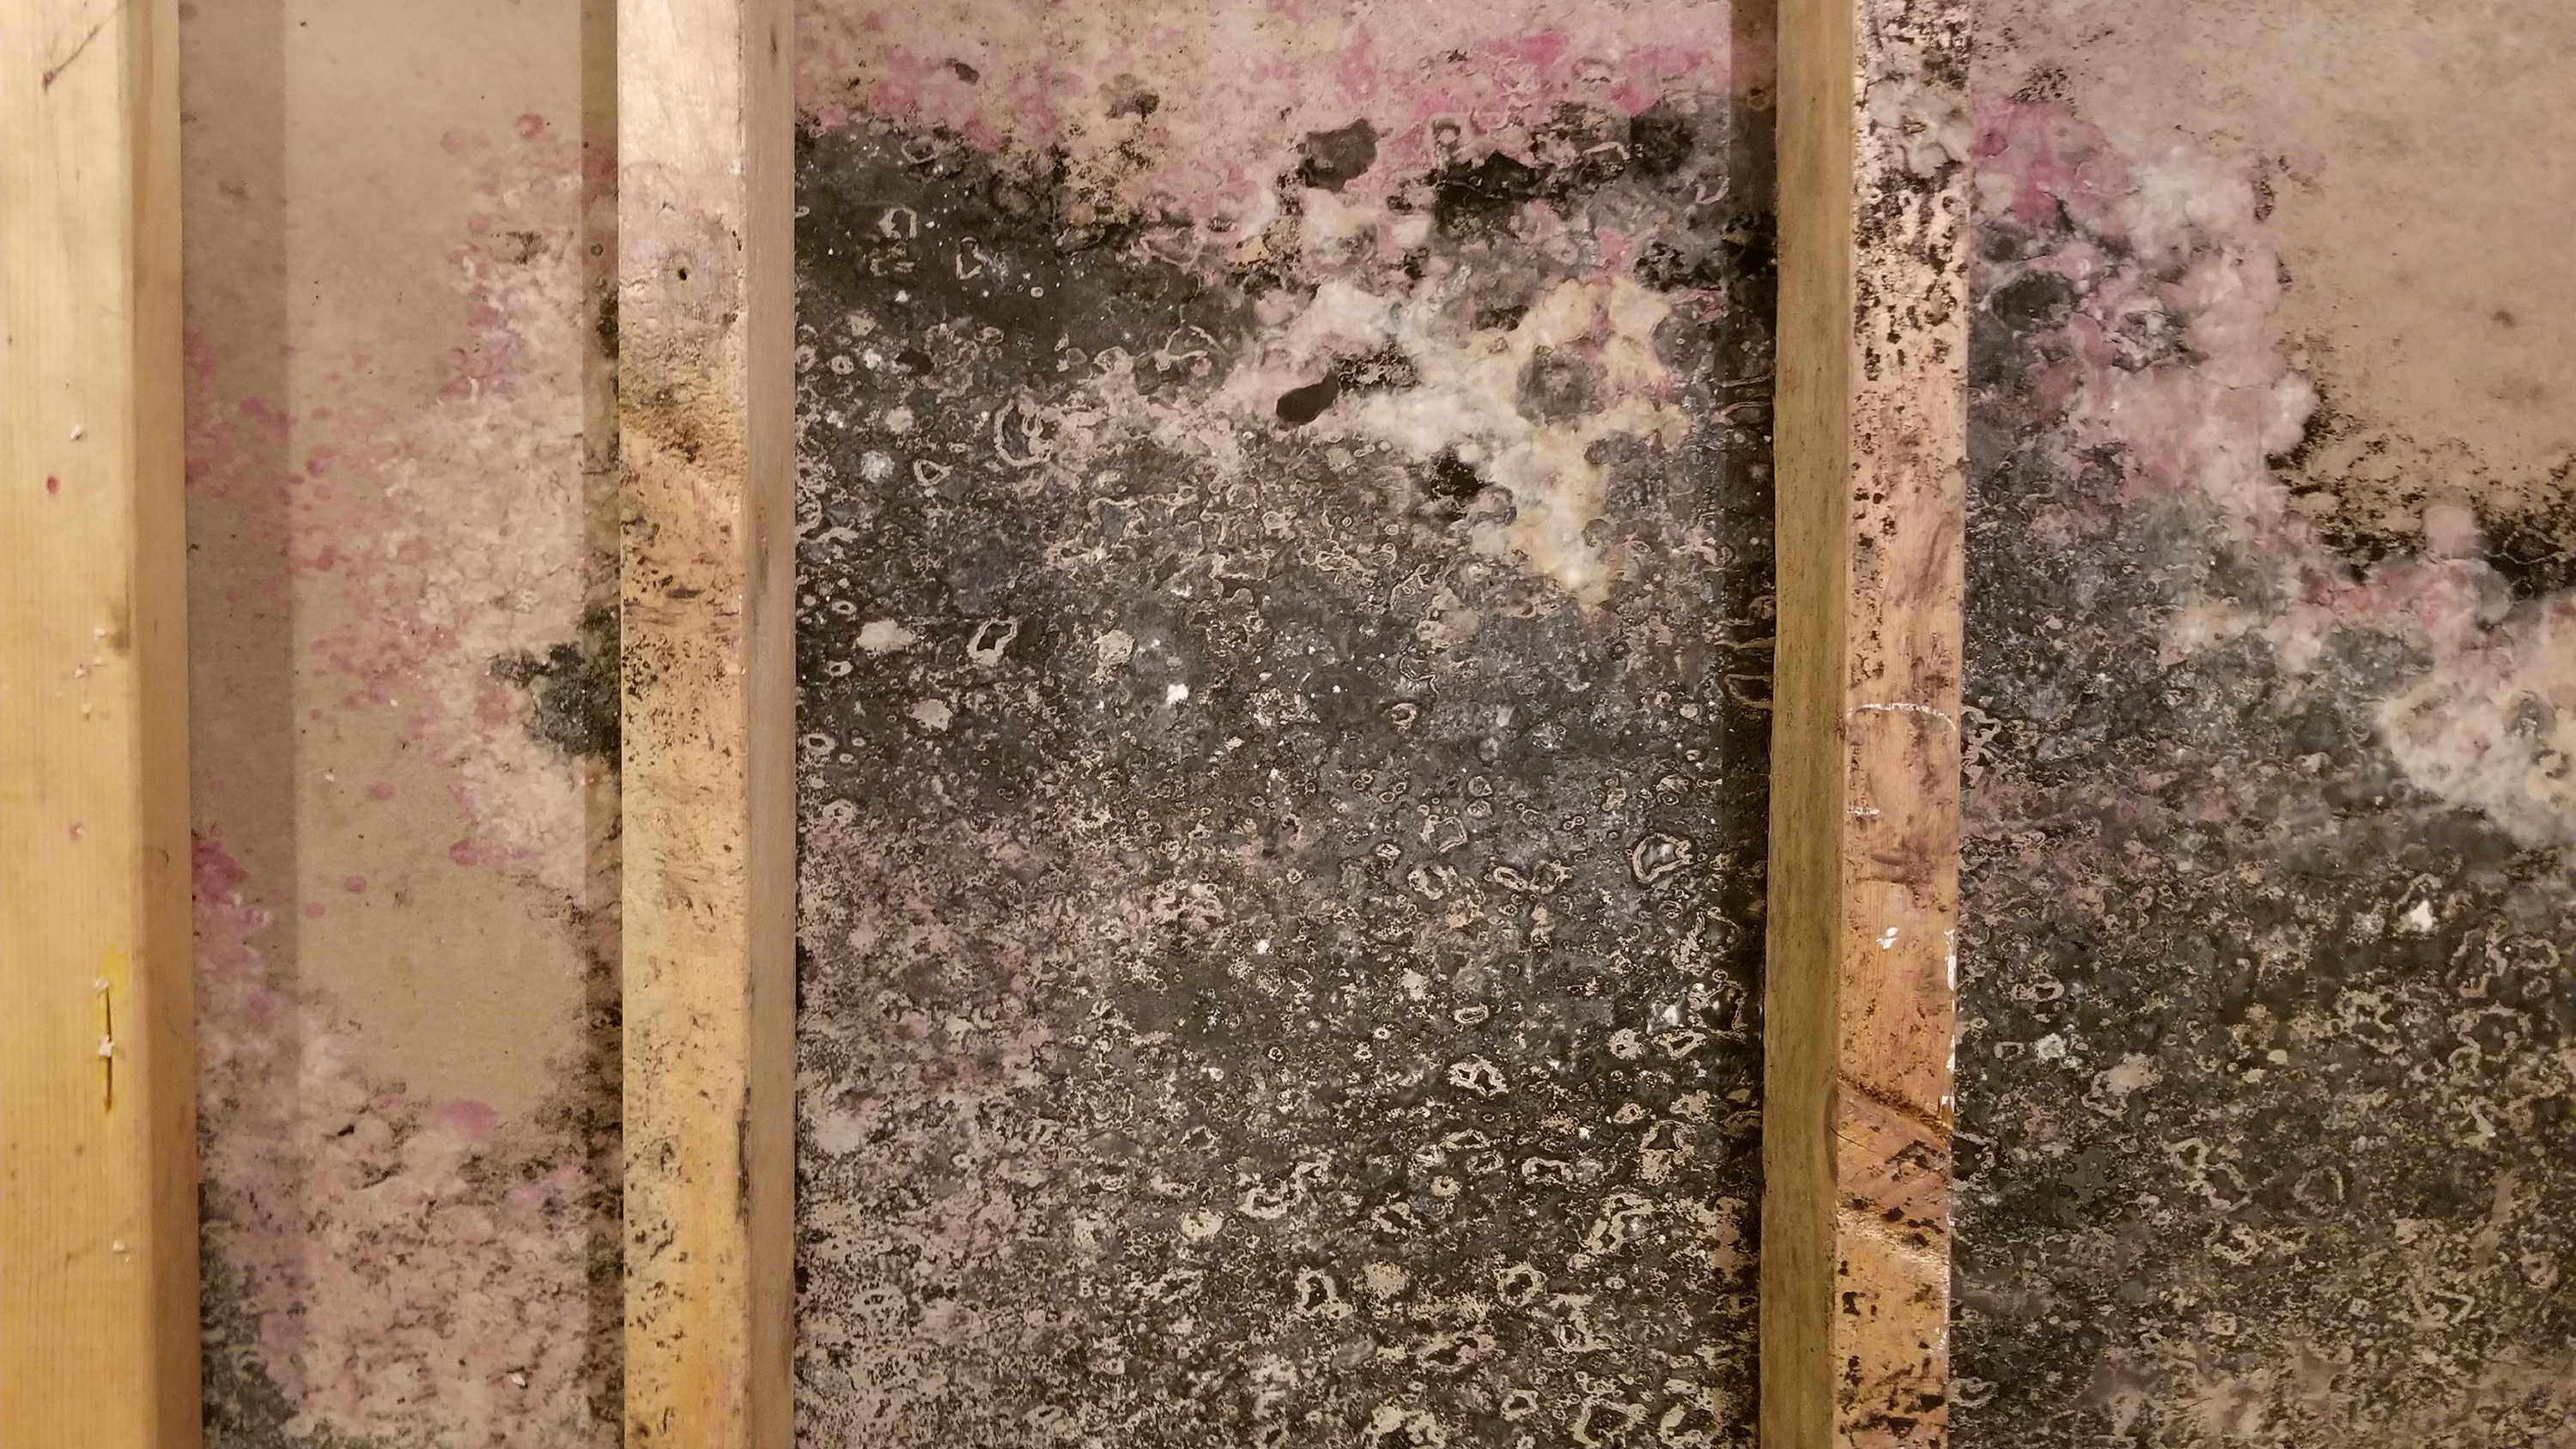 Mold covering wall